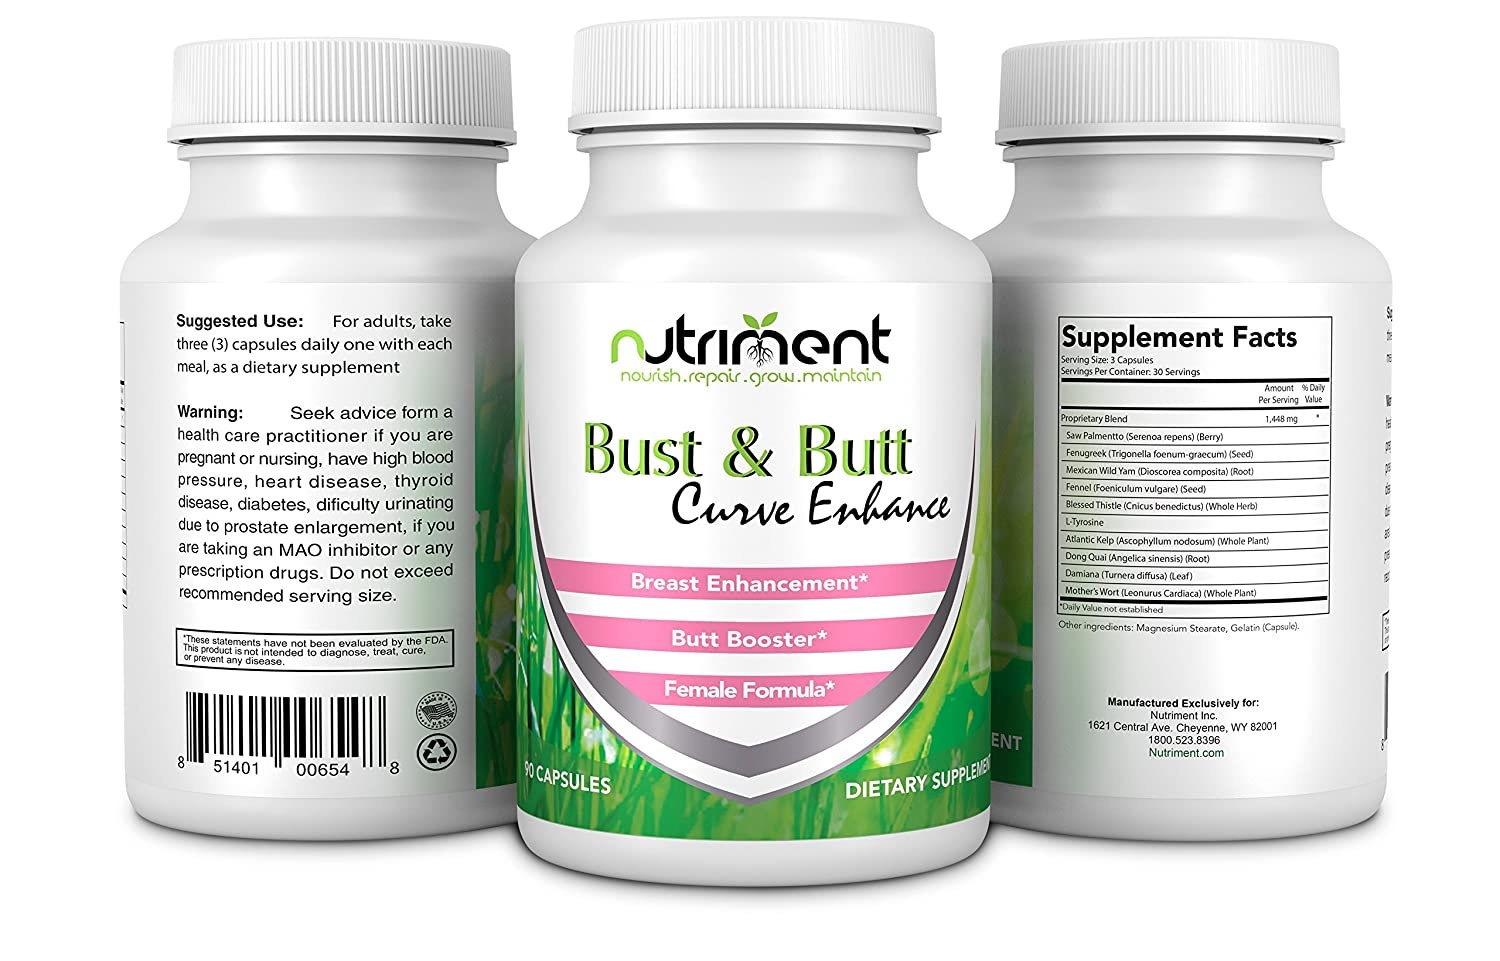 ca449bd499 Amazon.com  Breast and Buttock Enhancing pills-Increase Bust and Butt Size  and Shape -Sculpt Your Body Like Never Before-Promotes Increased Curves and  ...